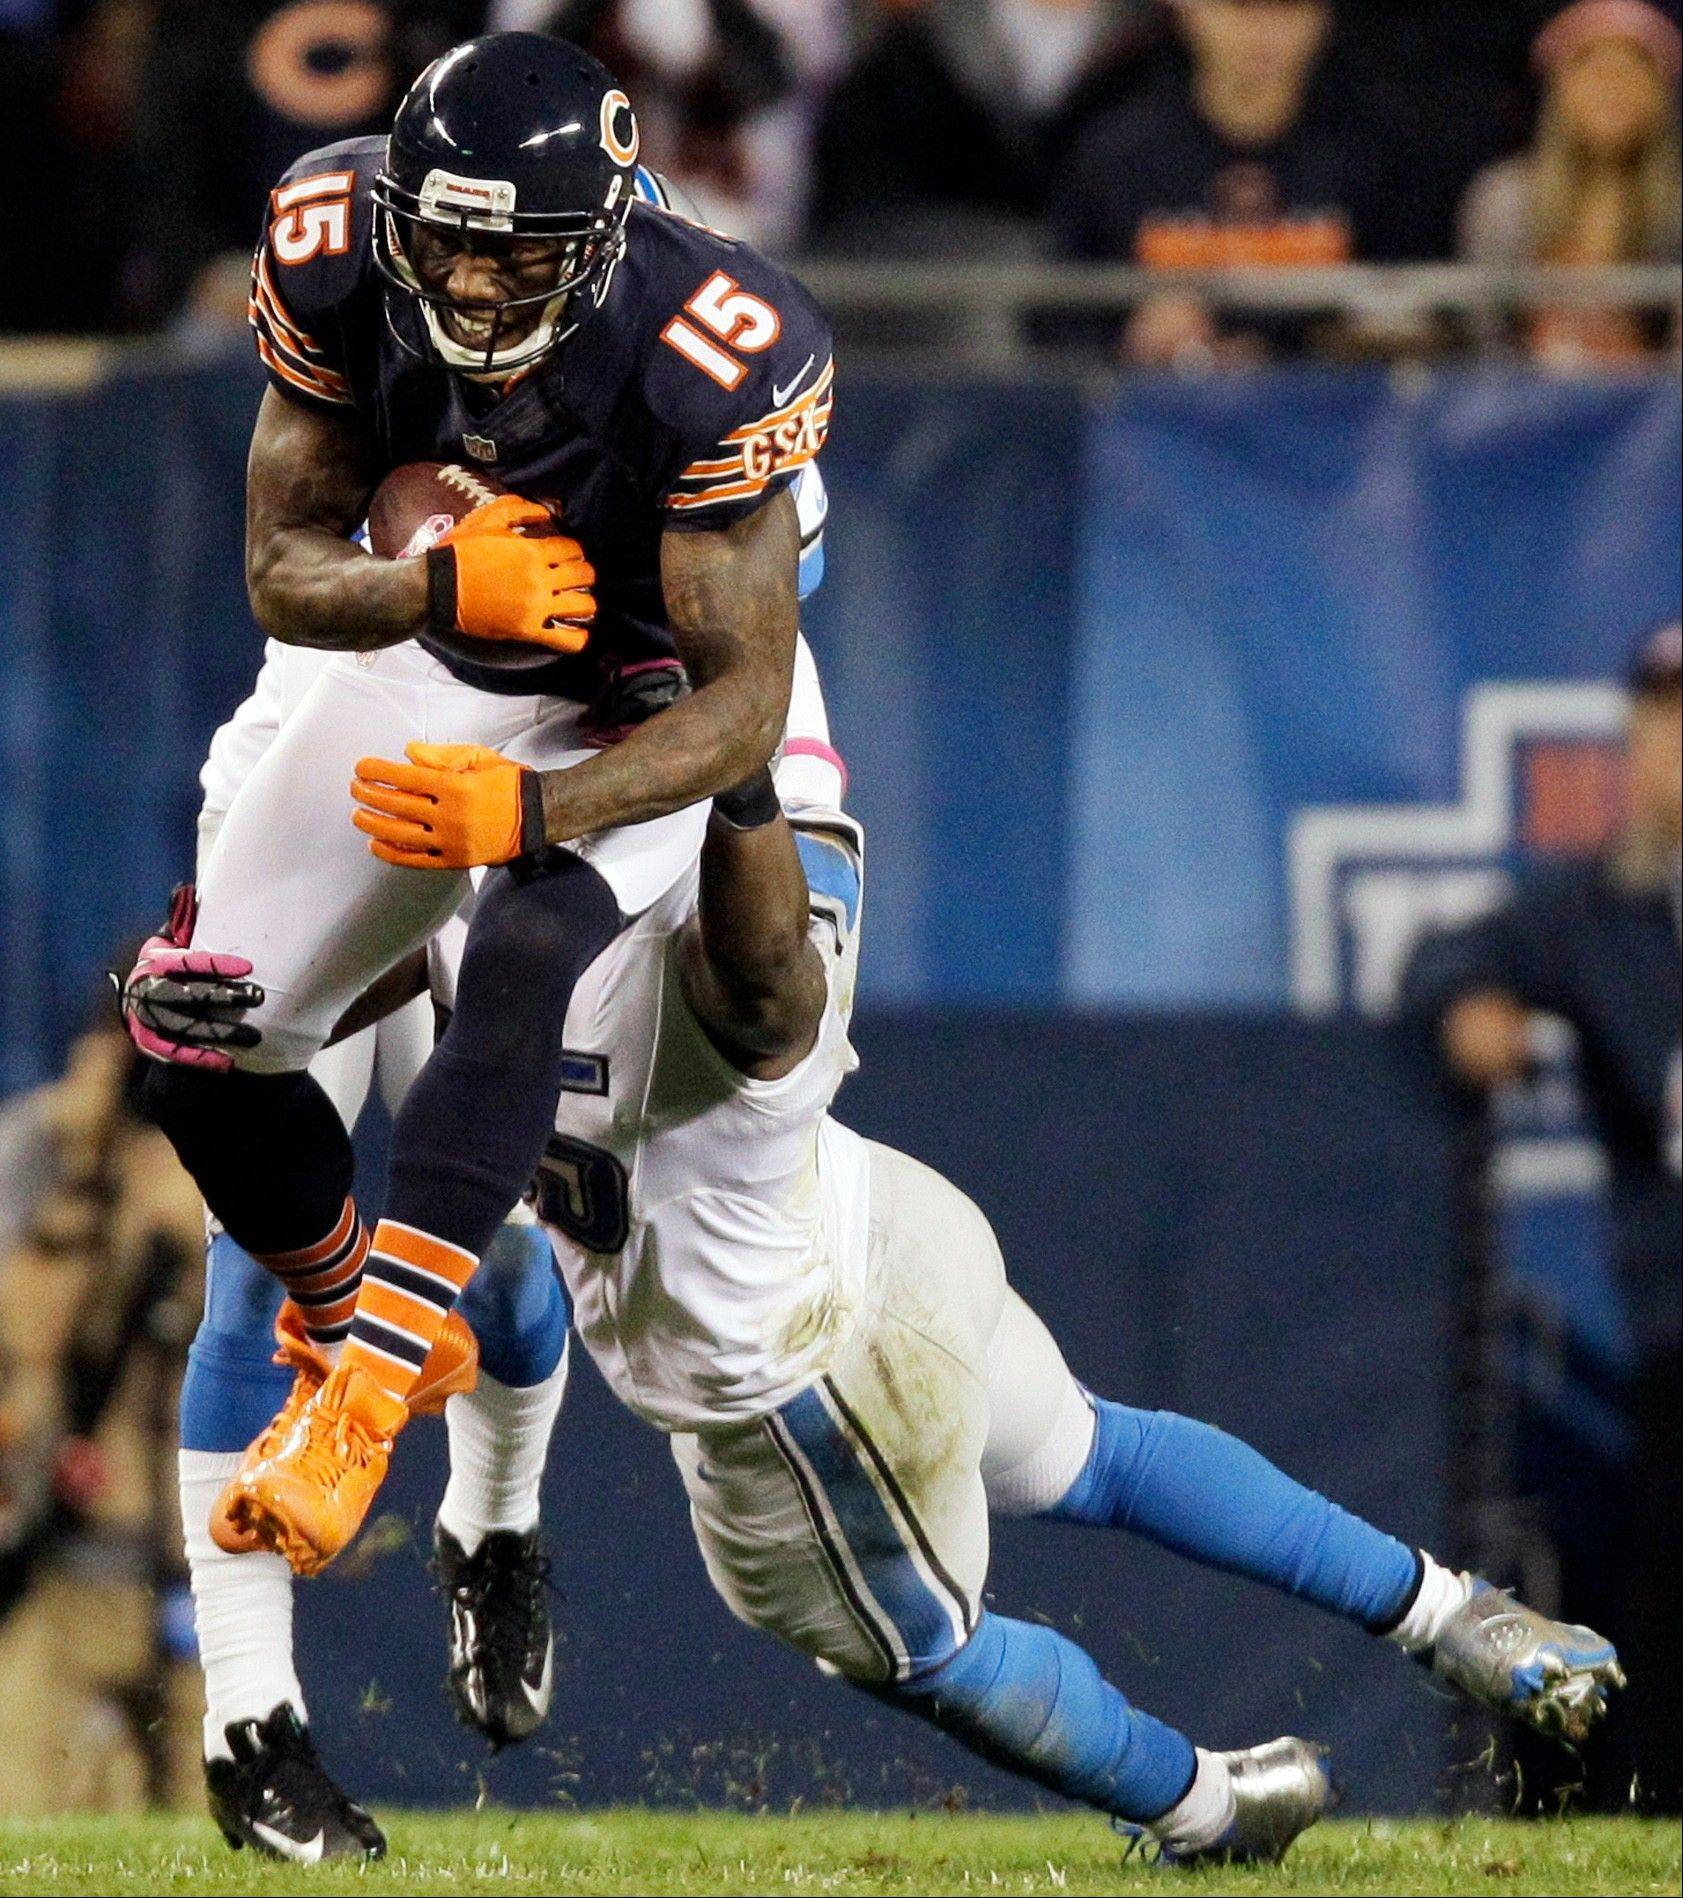 Chicago Bears wide receiver Brandon Marshall (15) is tackled by Detroit Lions linebacker Stephen Tulloch in the first half of an NFL football game in Chicago, Monday, Oct. 22, 2012.